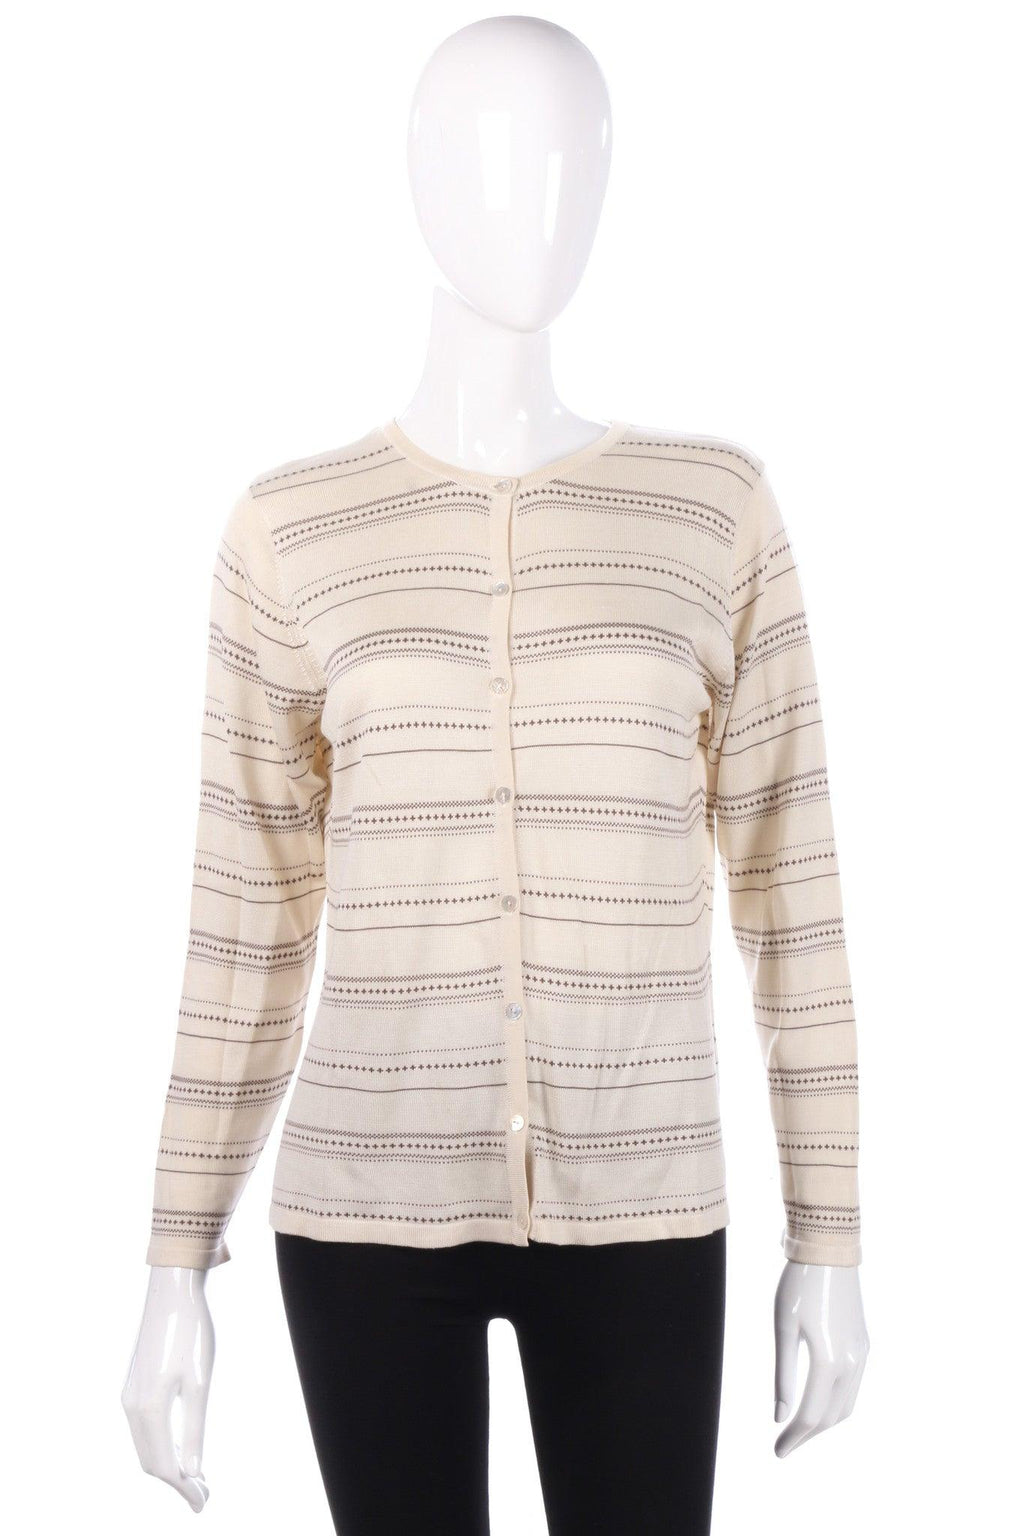 Marks and Spencer striped cardigan size 12